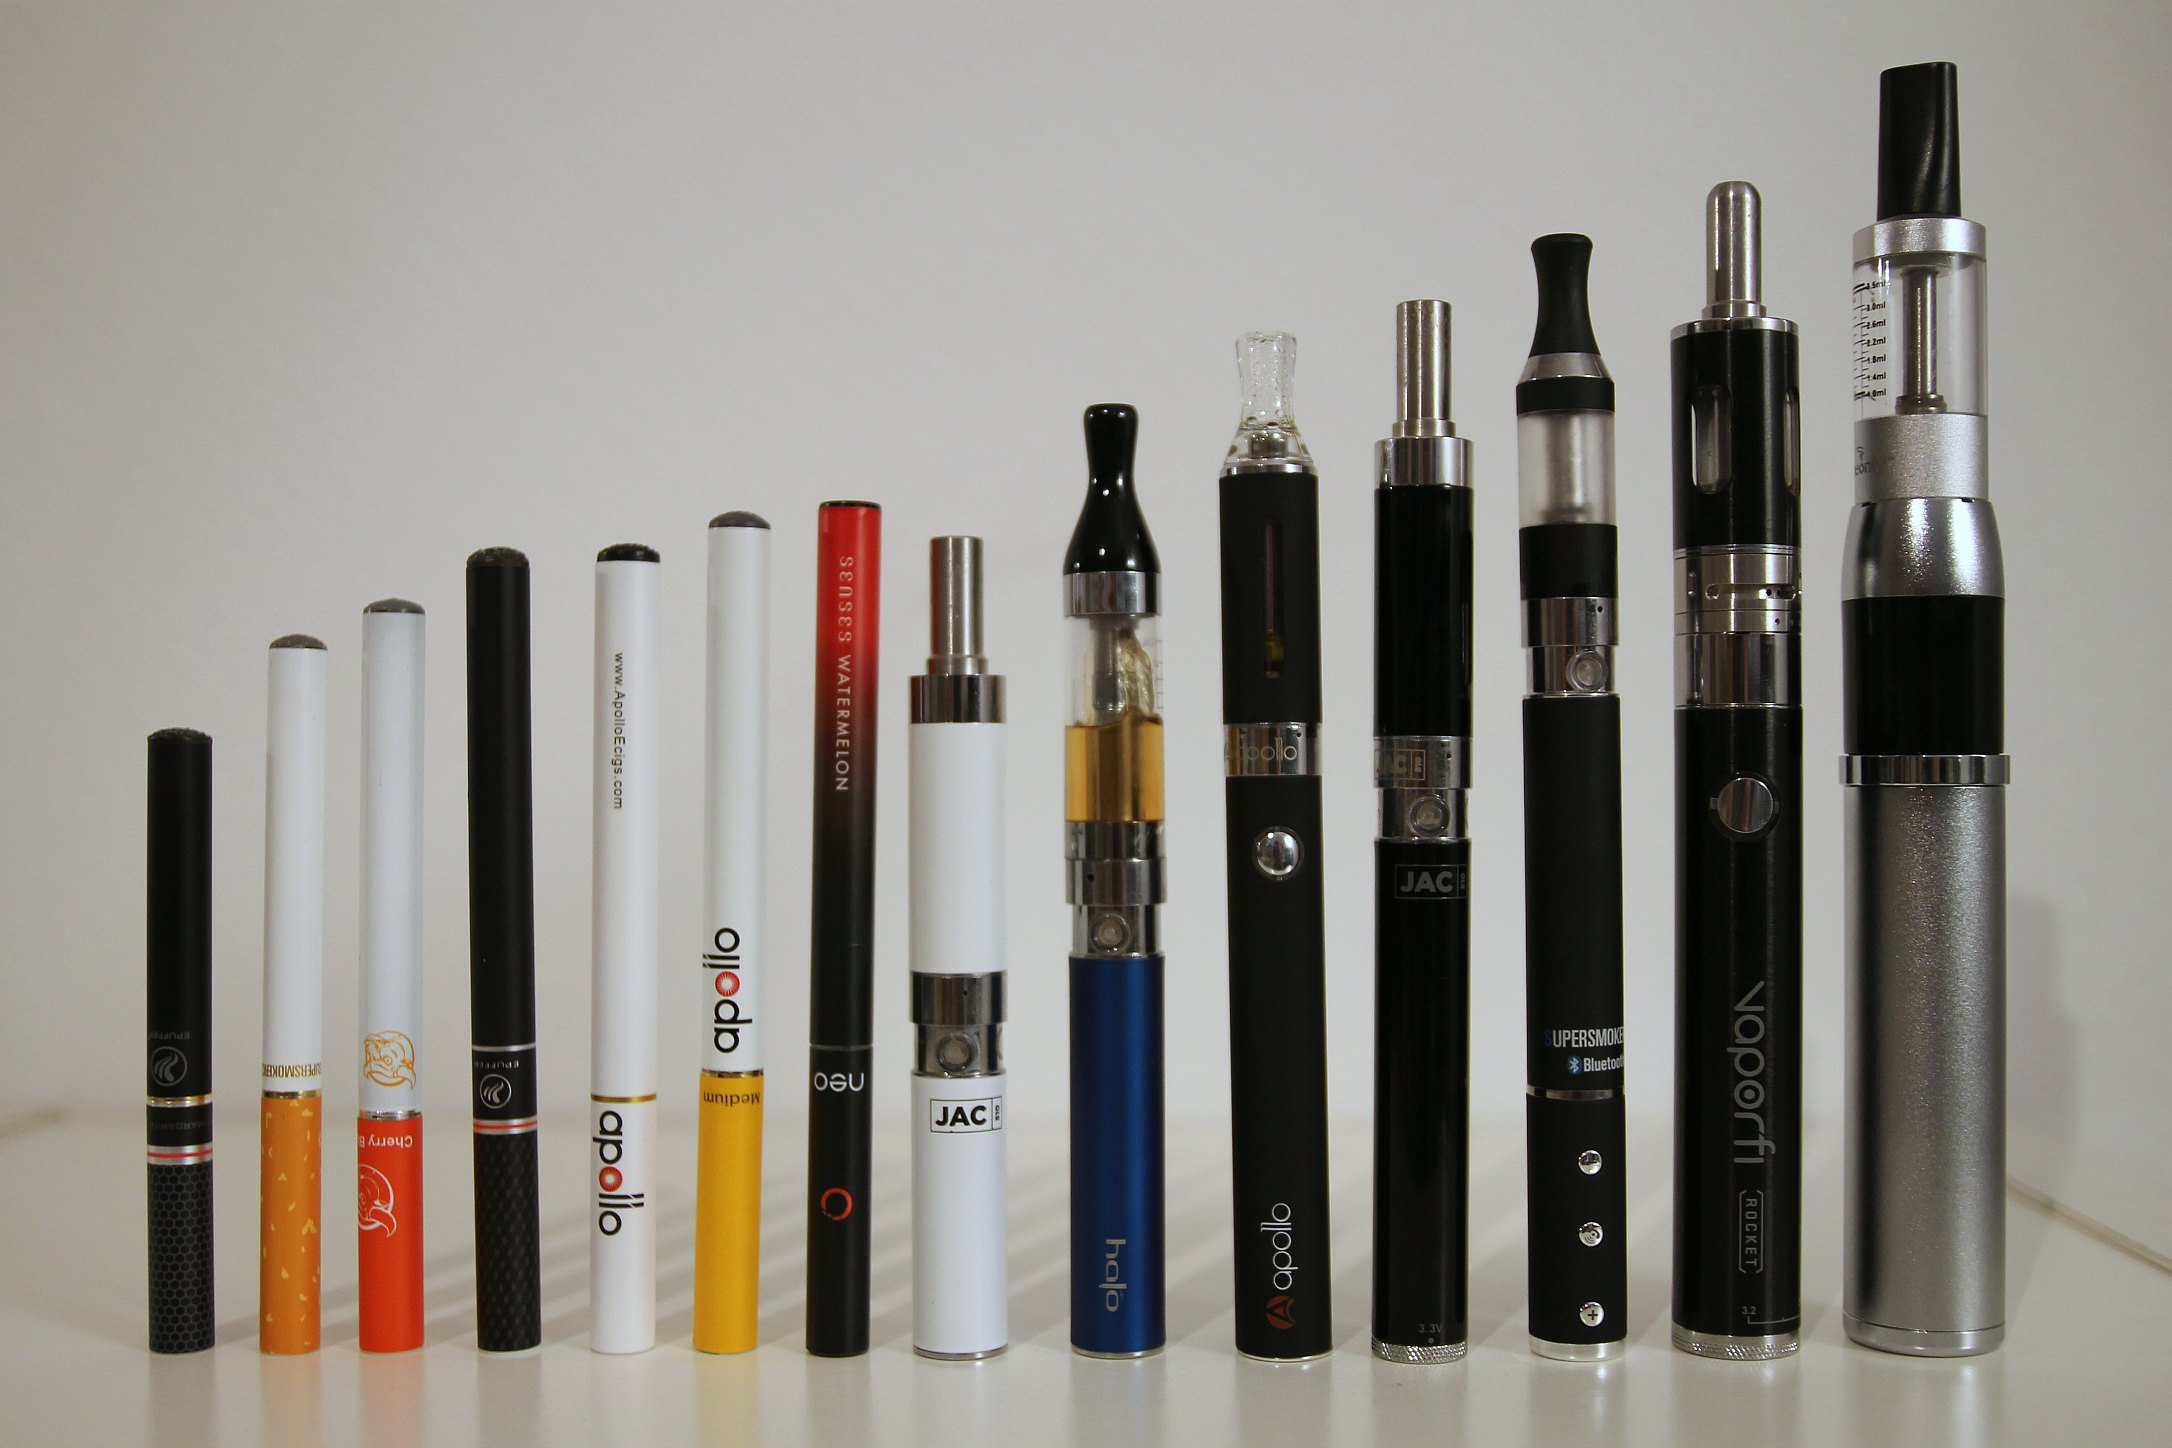 File:Different types of electronic cigarettes (15249922438).jpg - Wikimedia Commons commons.wikimedia.org2172 × 1448Search by image